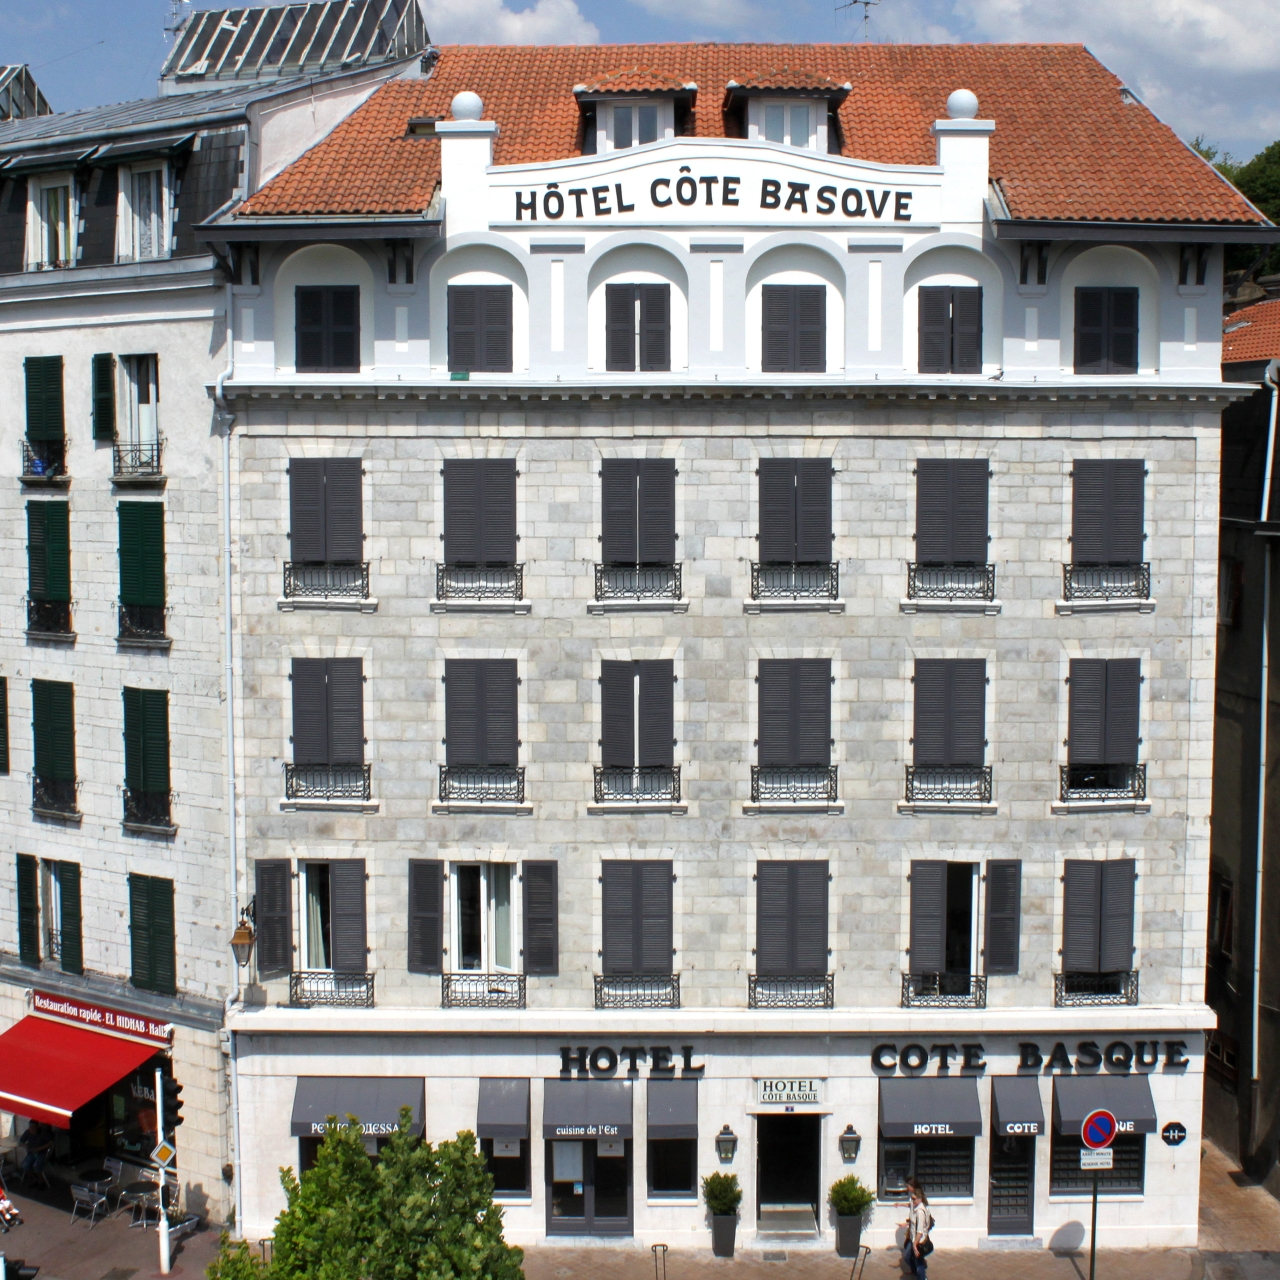 Hotel Cote Basque In Bayonne Aquitaine Hrs